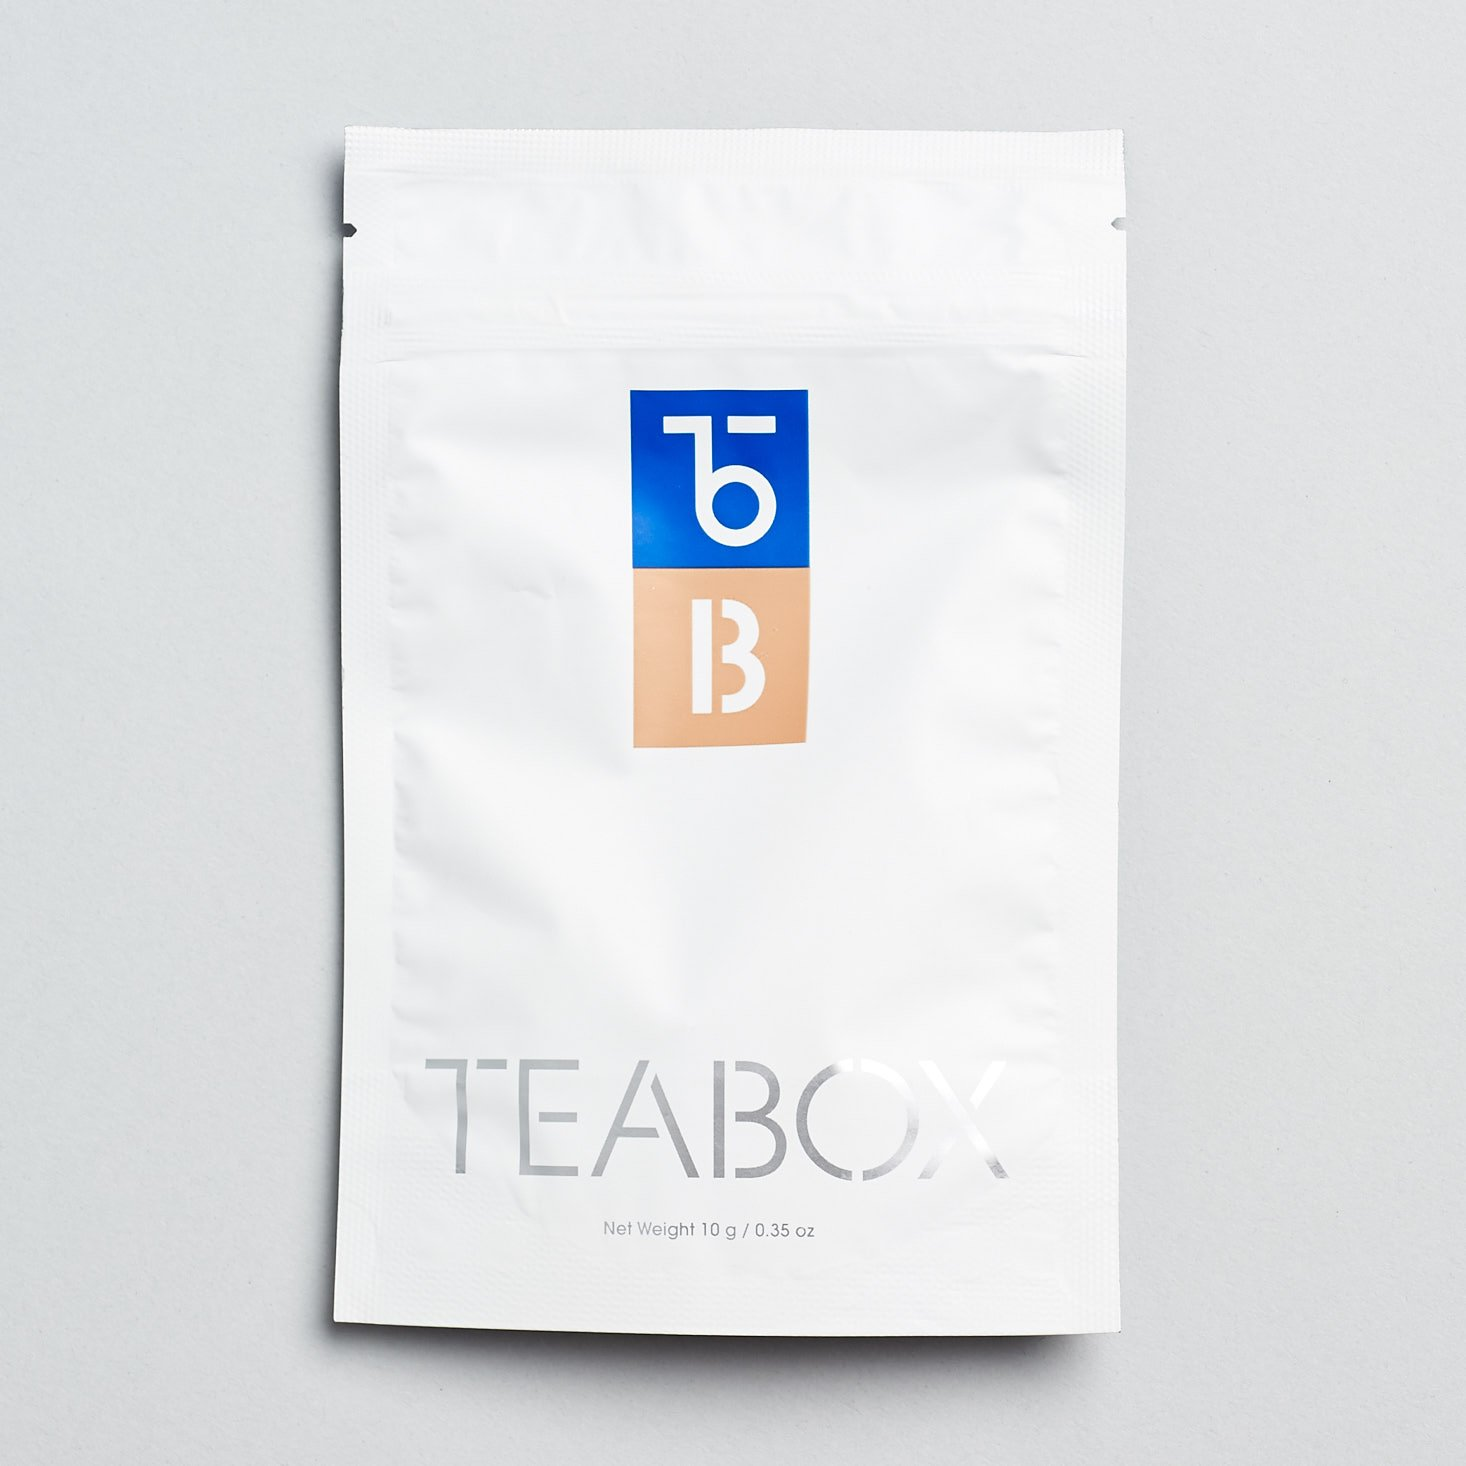 back of tea bag with teabox logo